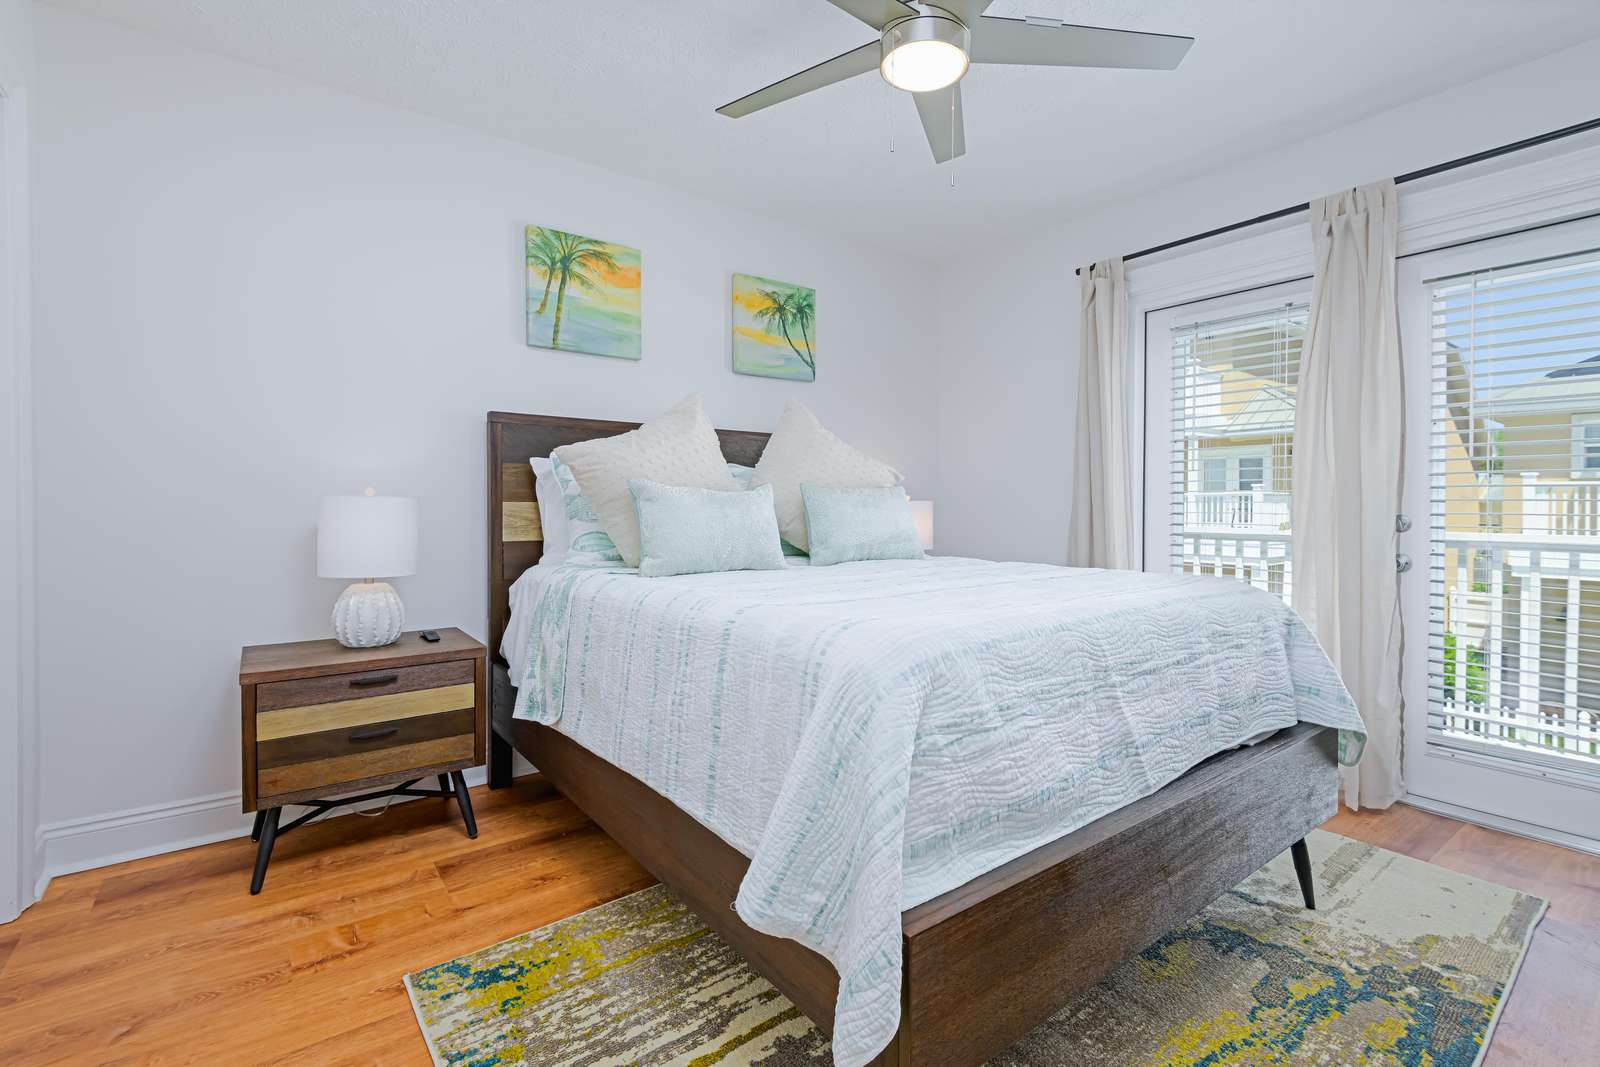 Comfy and updated bedding throughout! Basic linen provided!